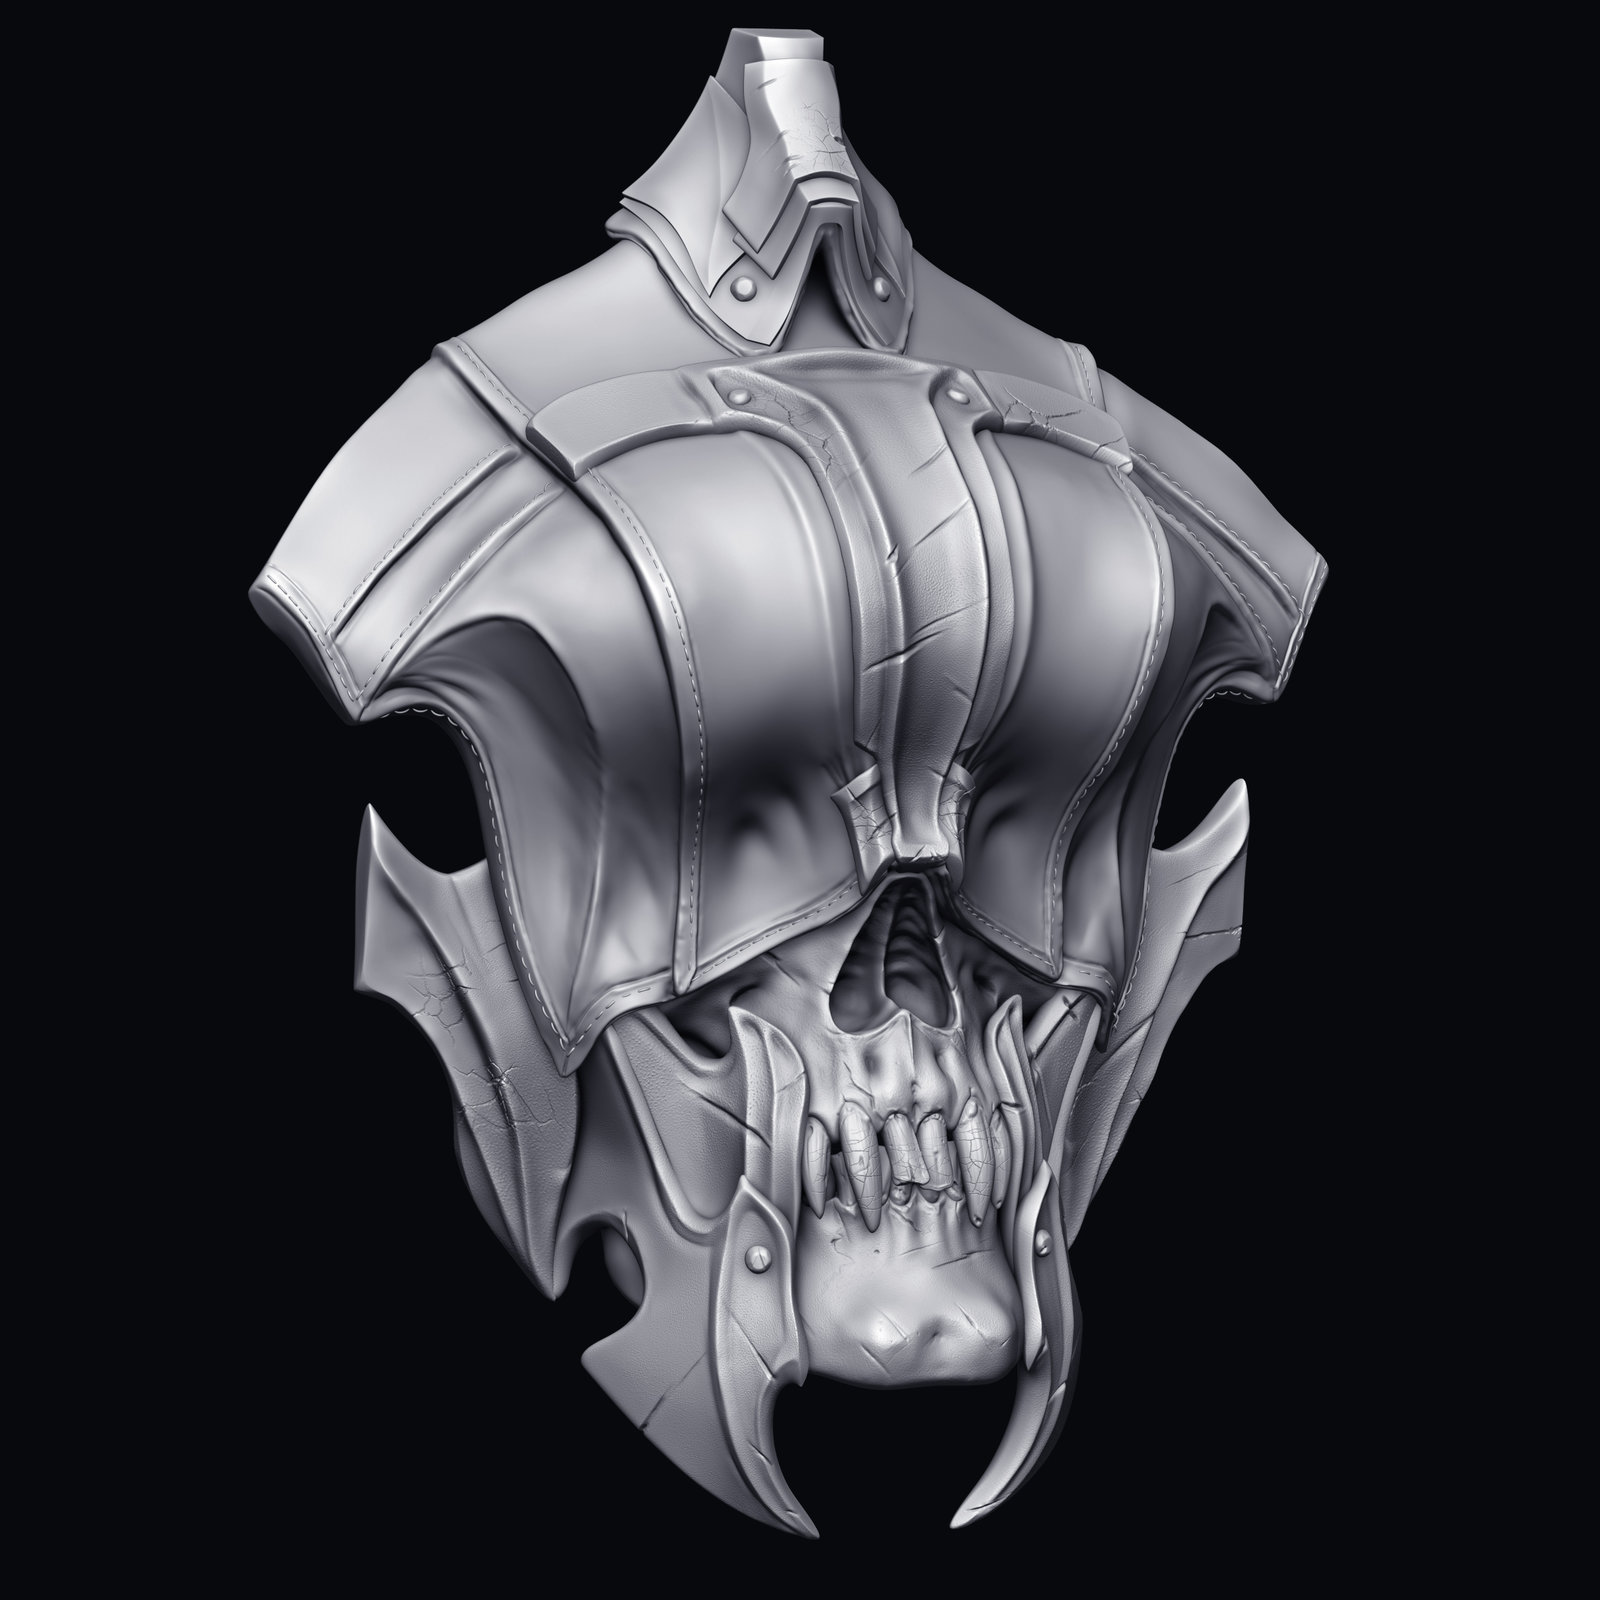 Chest skull,  It was originally designed so that the eye flaps would open and projectiles would be shot that way, but it didn't happen.  There is a full skull under that top portion.